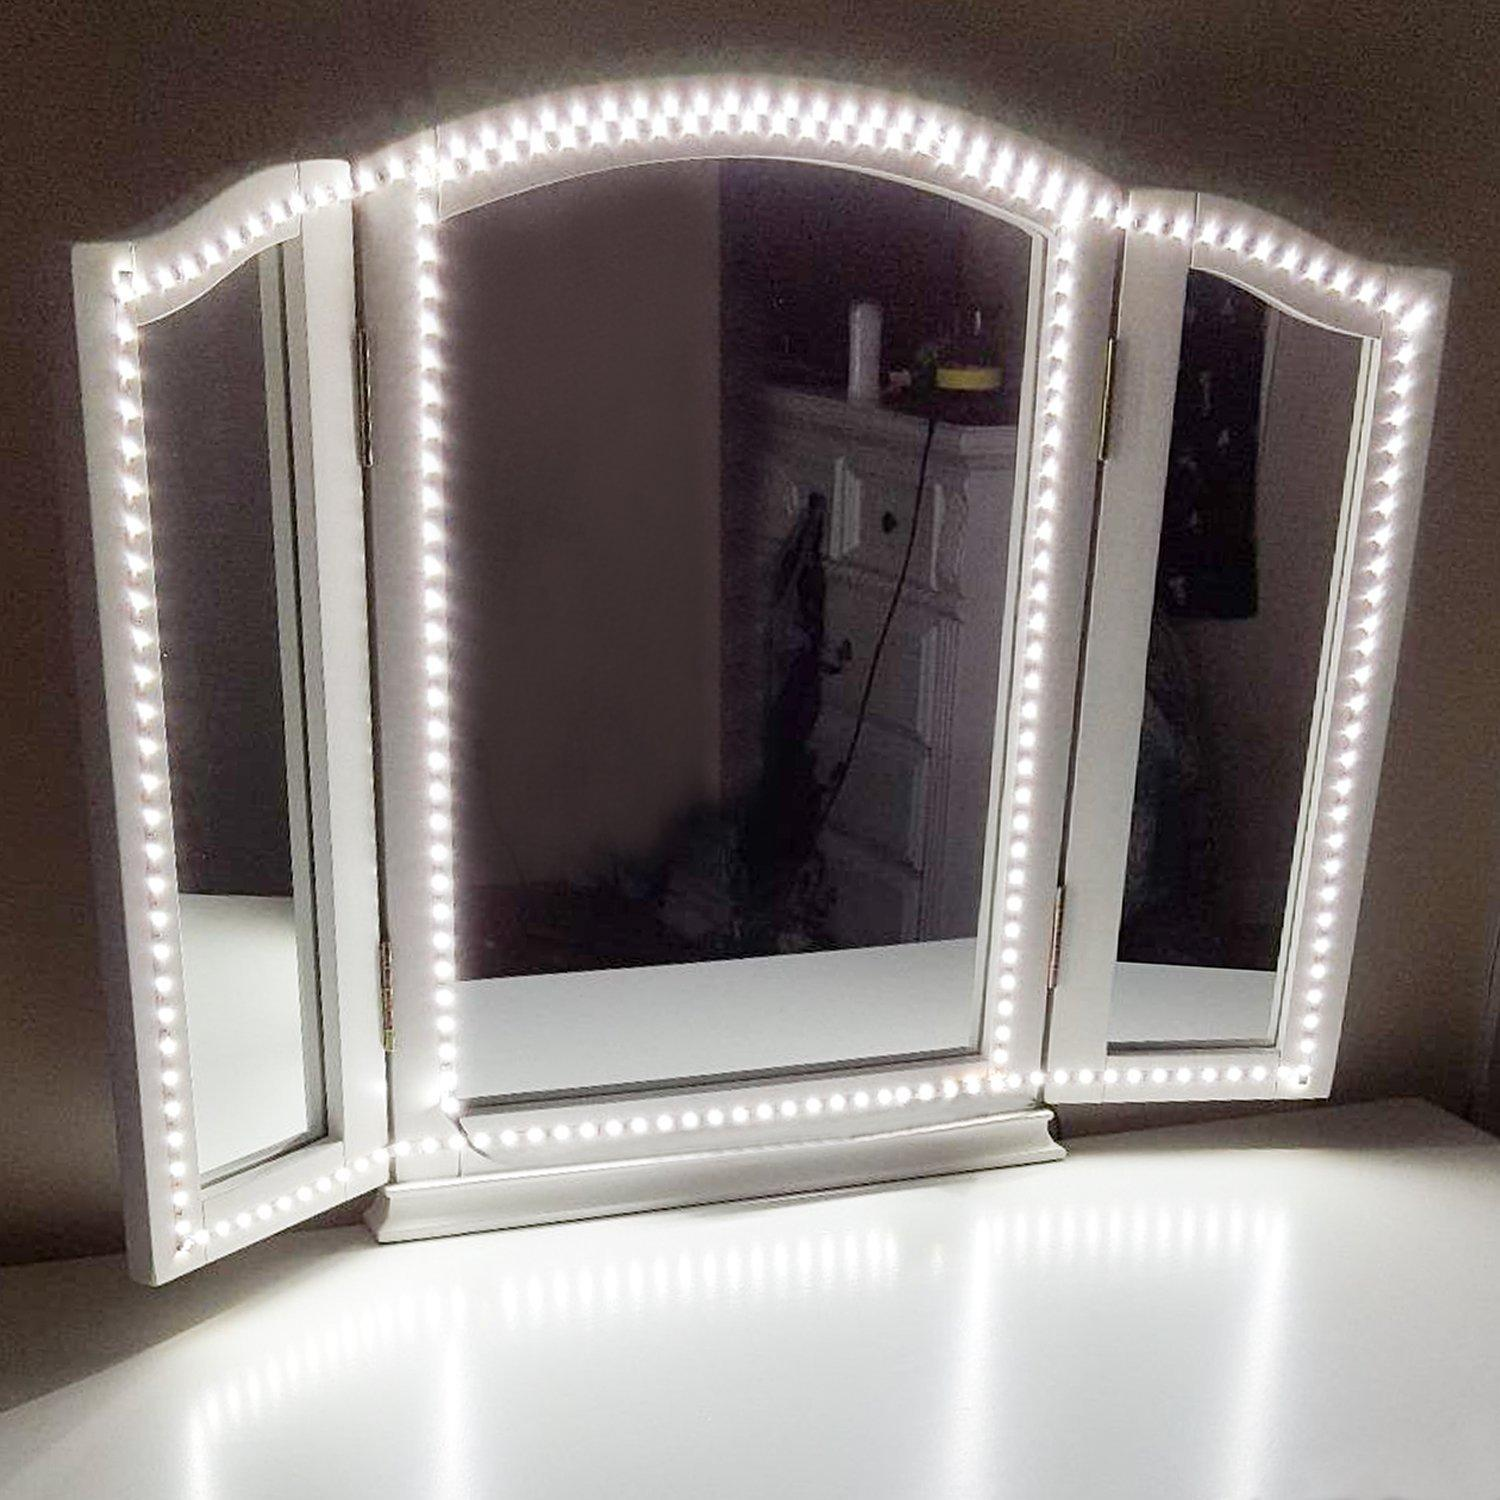 2018 Led Vanity Mirror Lights Kit 13ft 4m 240 Leds Daylight White Hollywood Style Light With Dimmer For Makeup Dressing Table From Wonlight